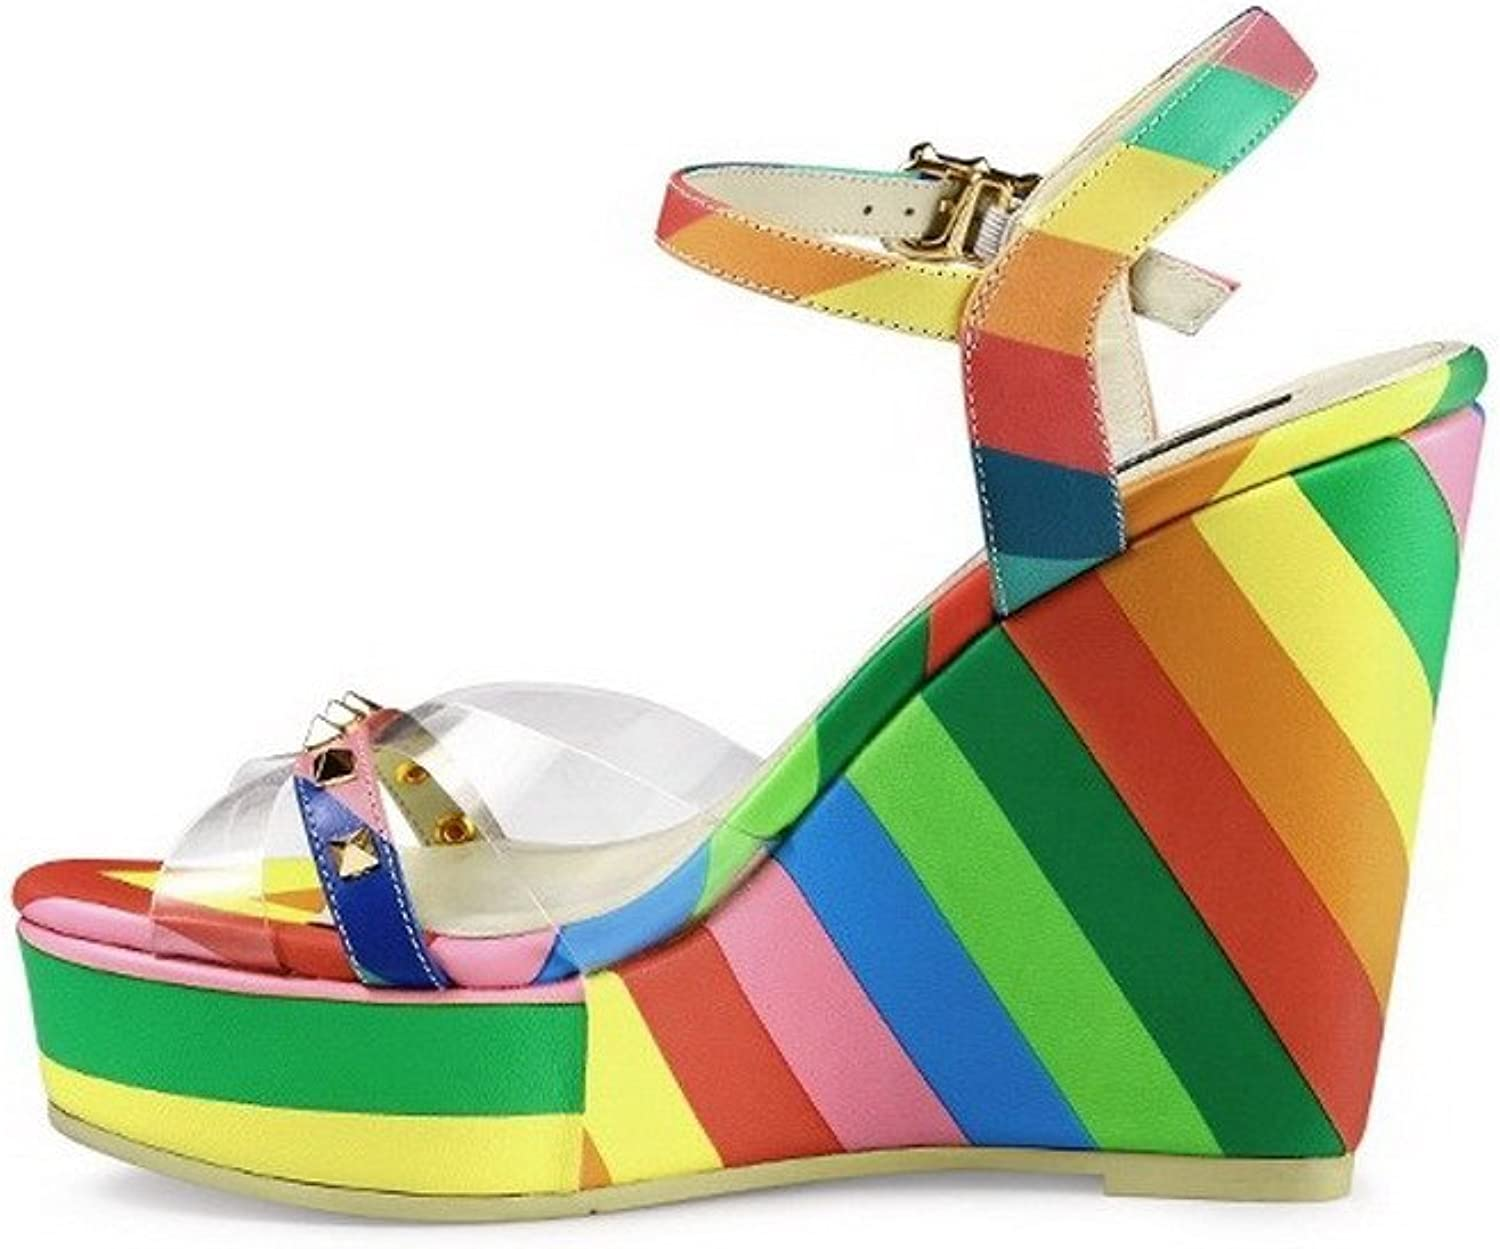 AllhqFashion Women's Round Open Toe High Heels Assorted color Sandals with Wedge and Stripe